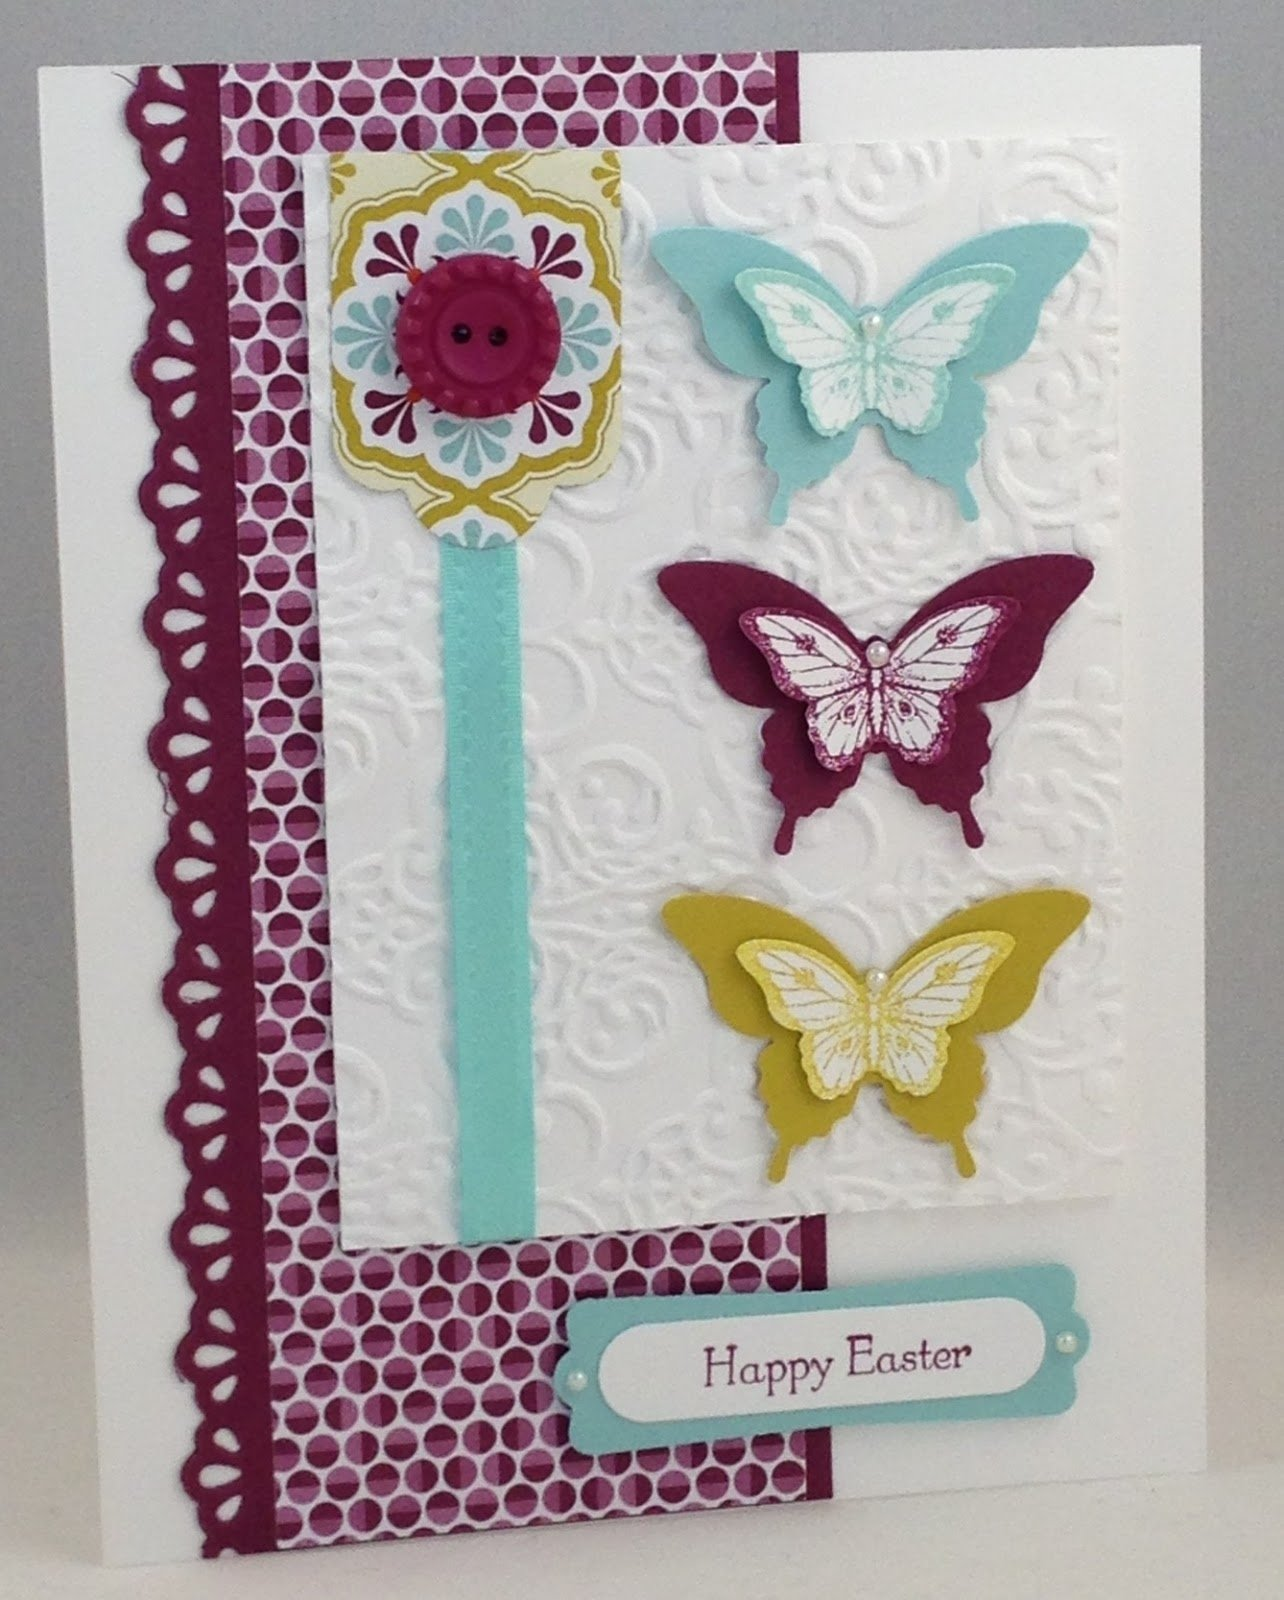 10 Lovable Stampin Up Easter Card Ideas stampintx stampin up easter and butterfly card ideas